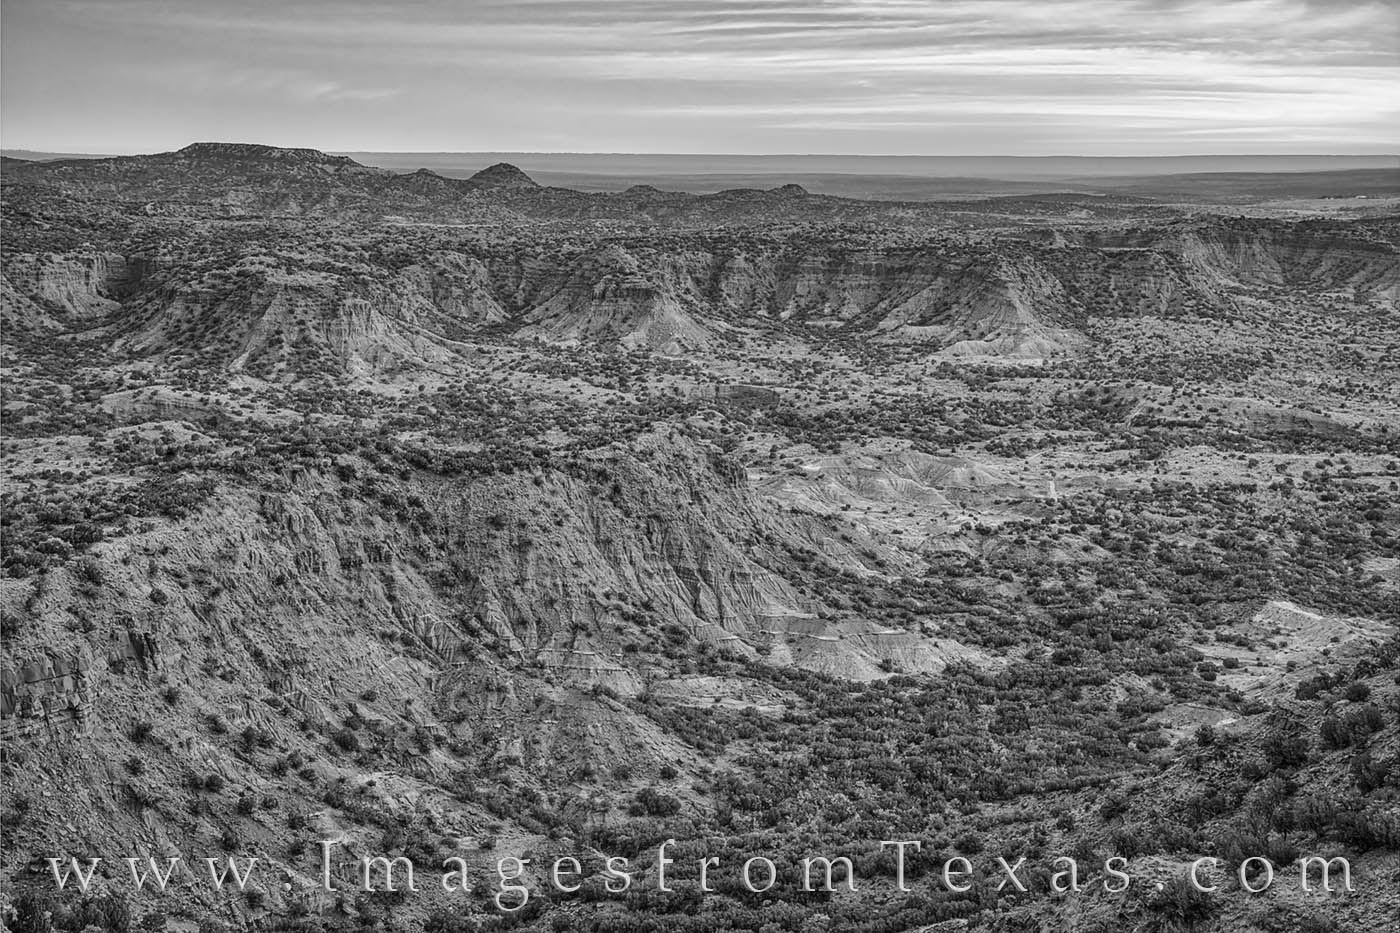 The canyons of Caprock are beautiful in the morning. This black and white photograph shows the beautiful and desolate landscape...